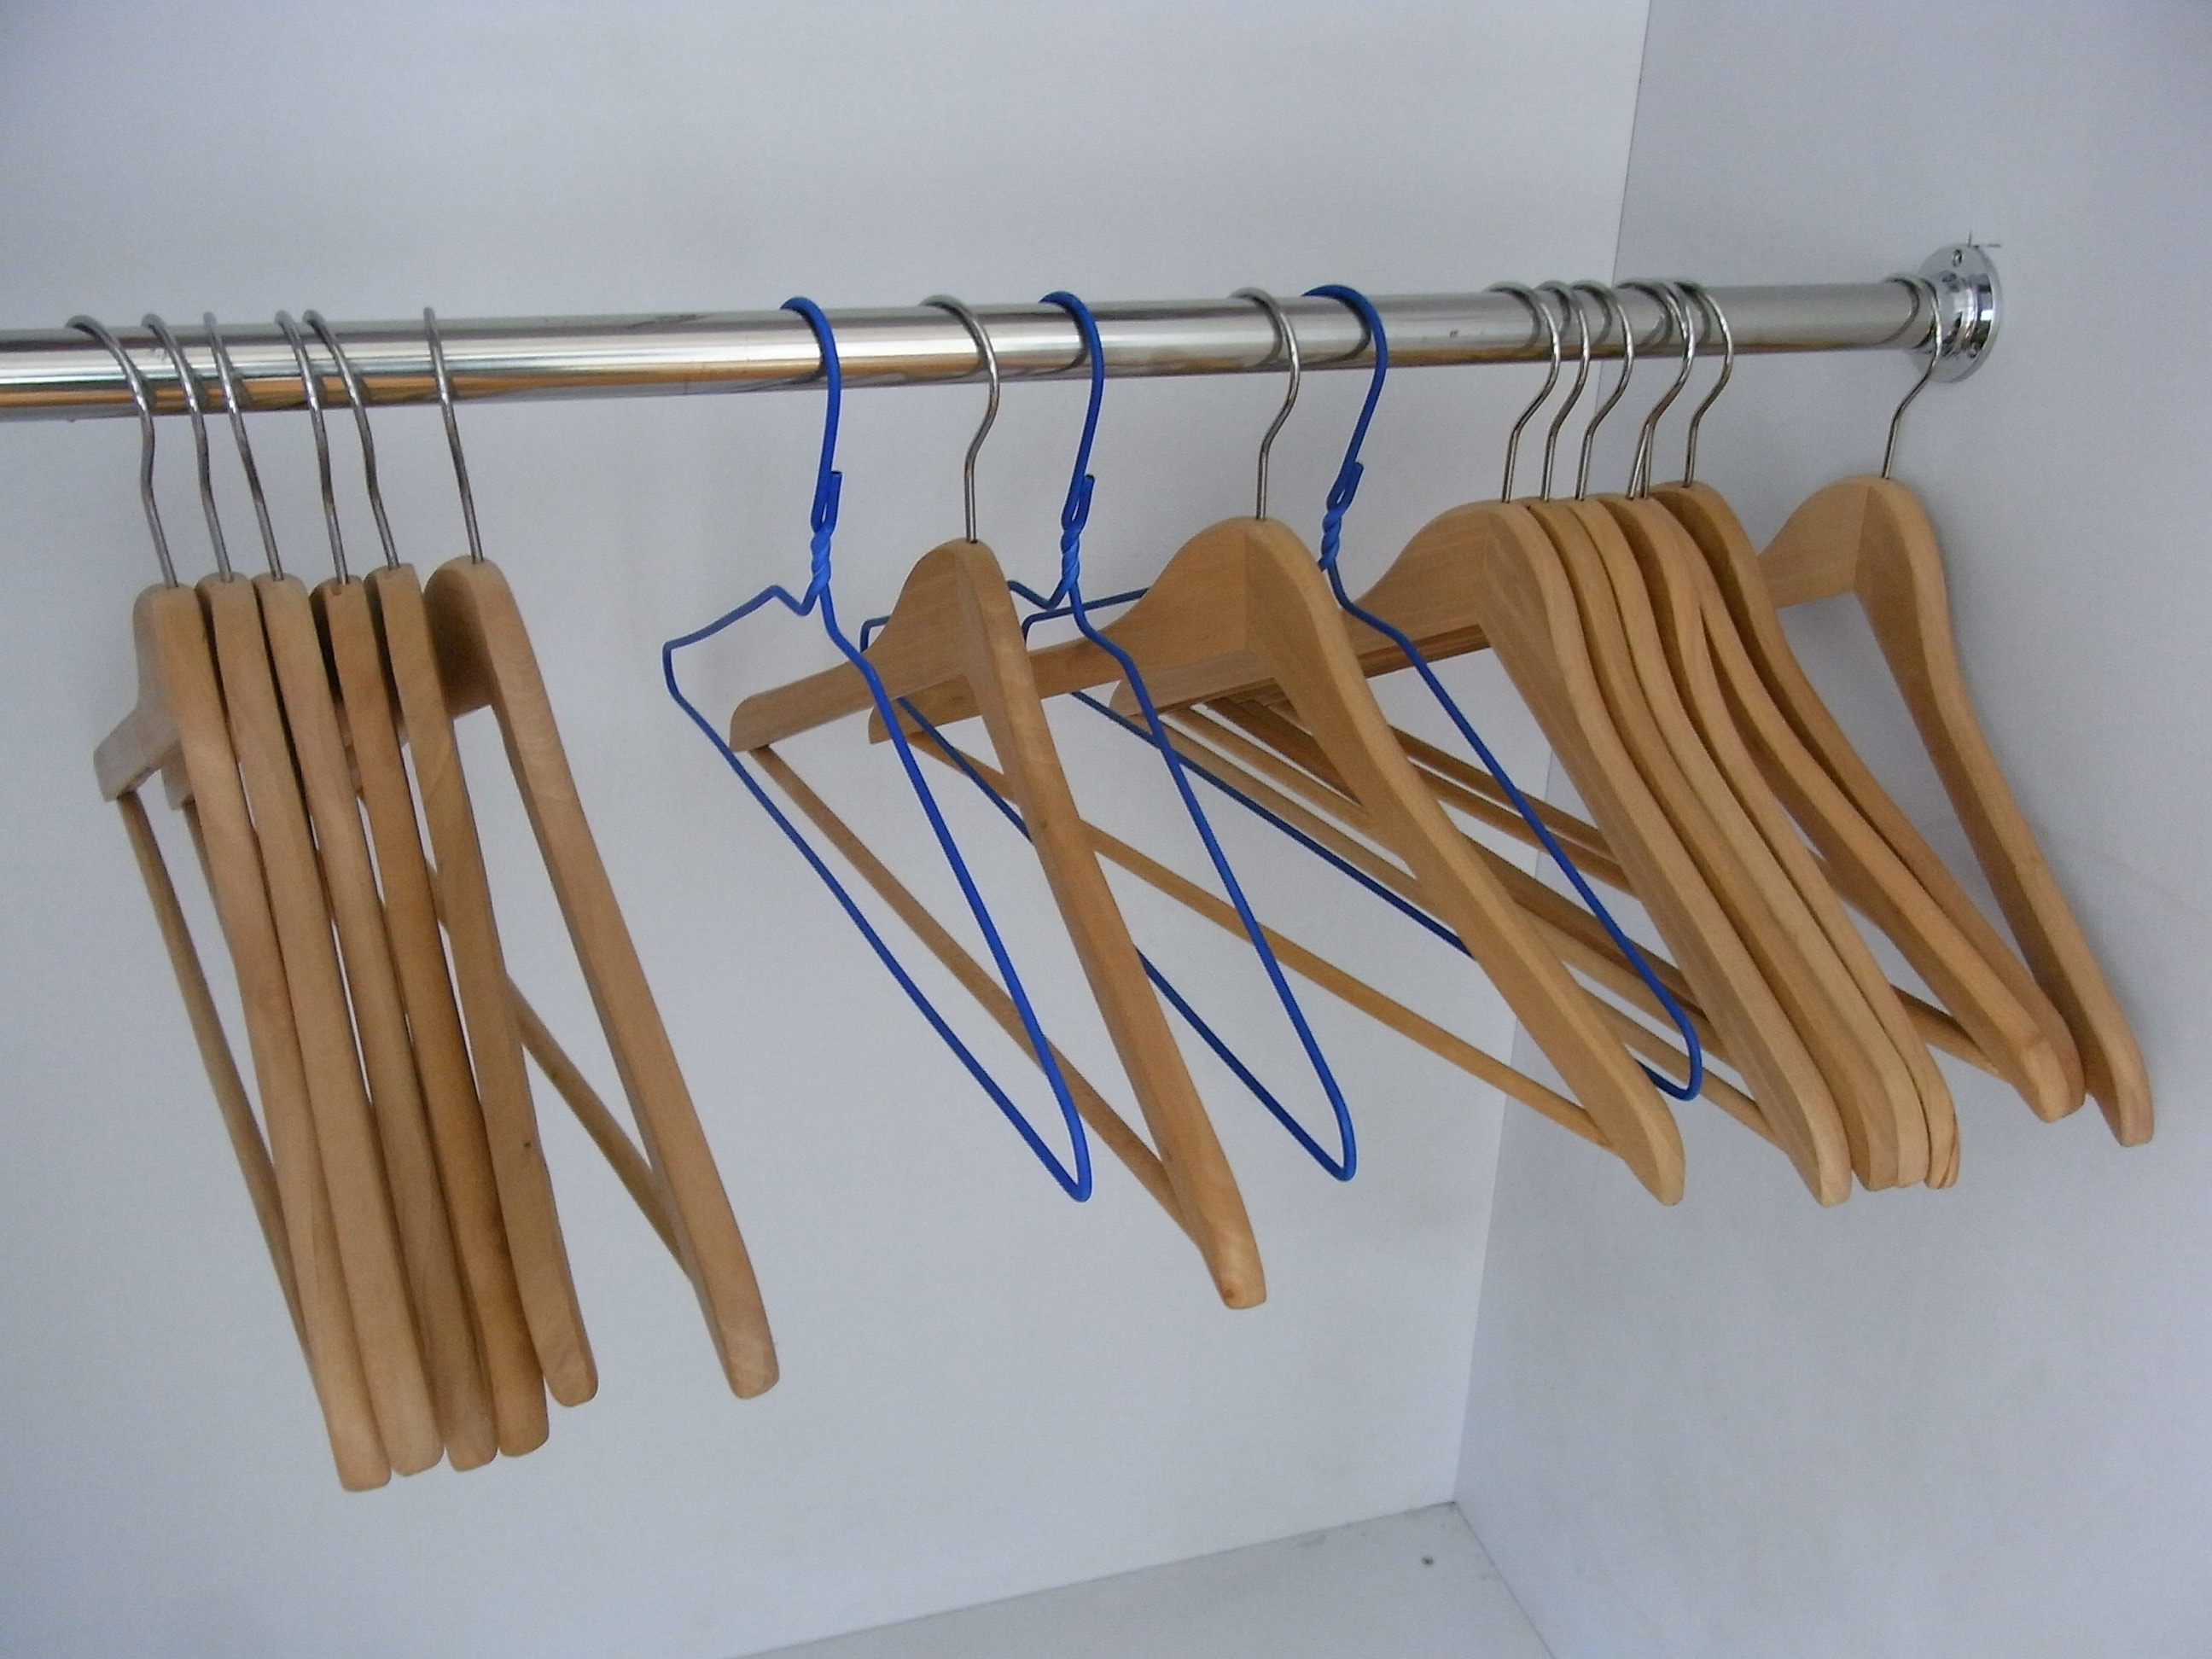 File Hk Sheung Wan 衣架 Clothes Hangers By Wood June 2012 Jpg Wikimedia Commons